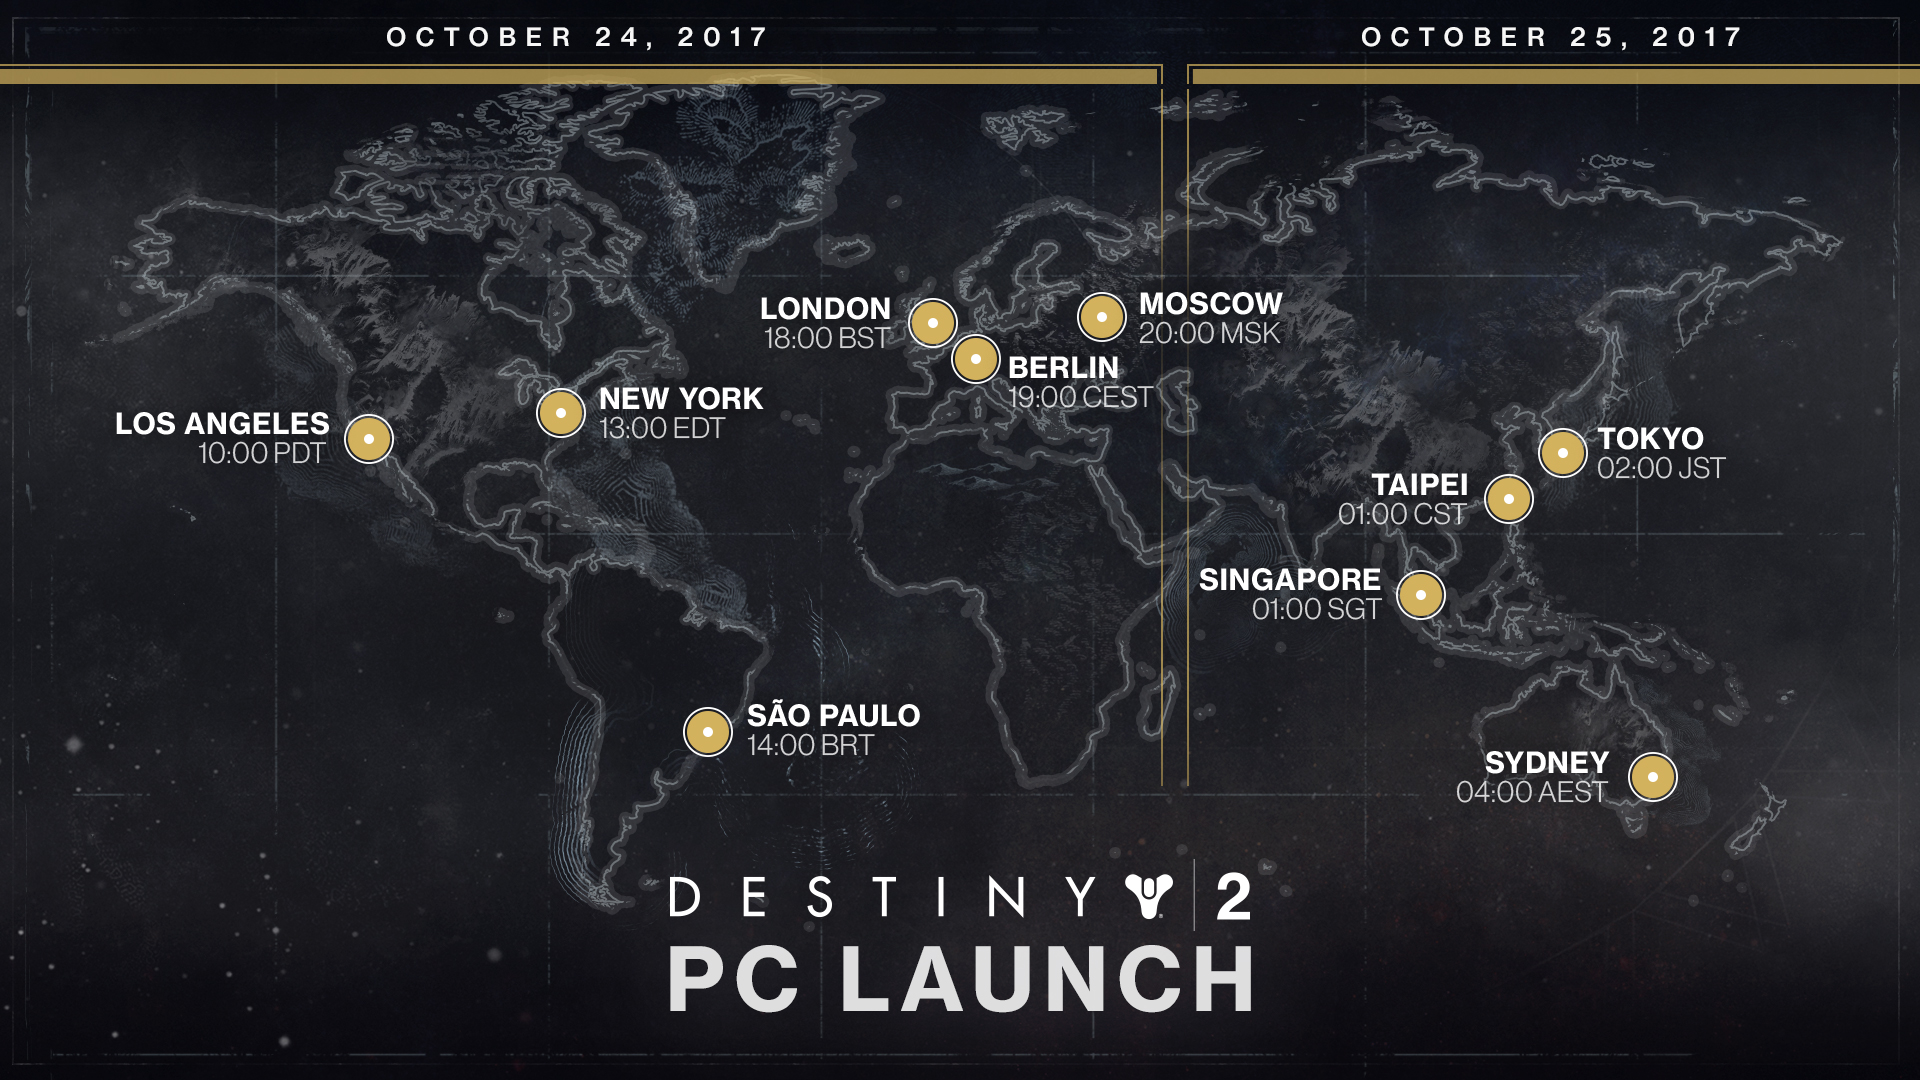 destiny 2 launch